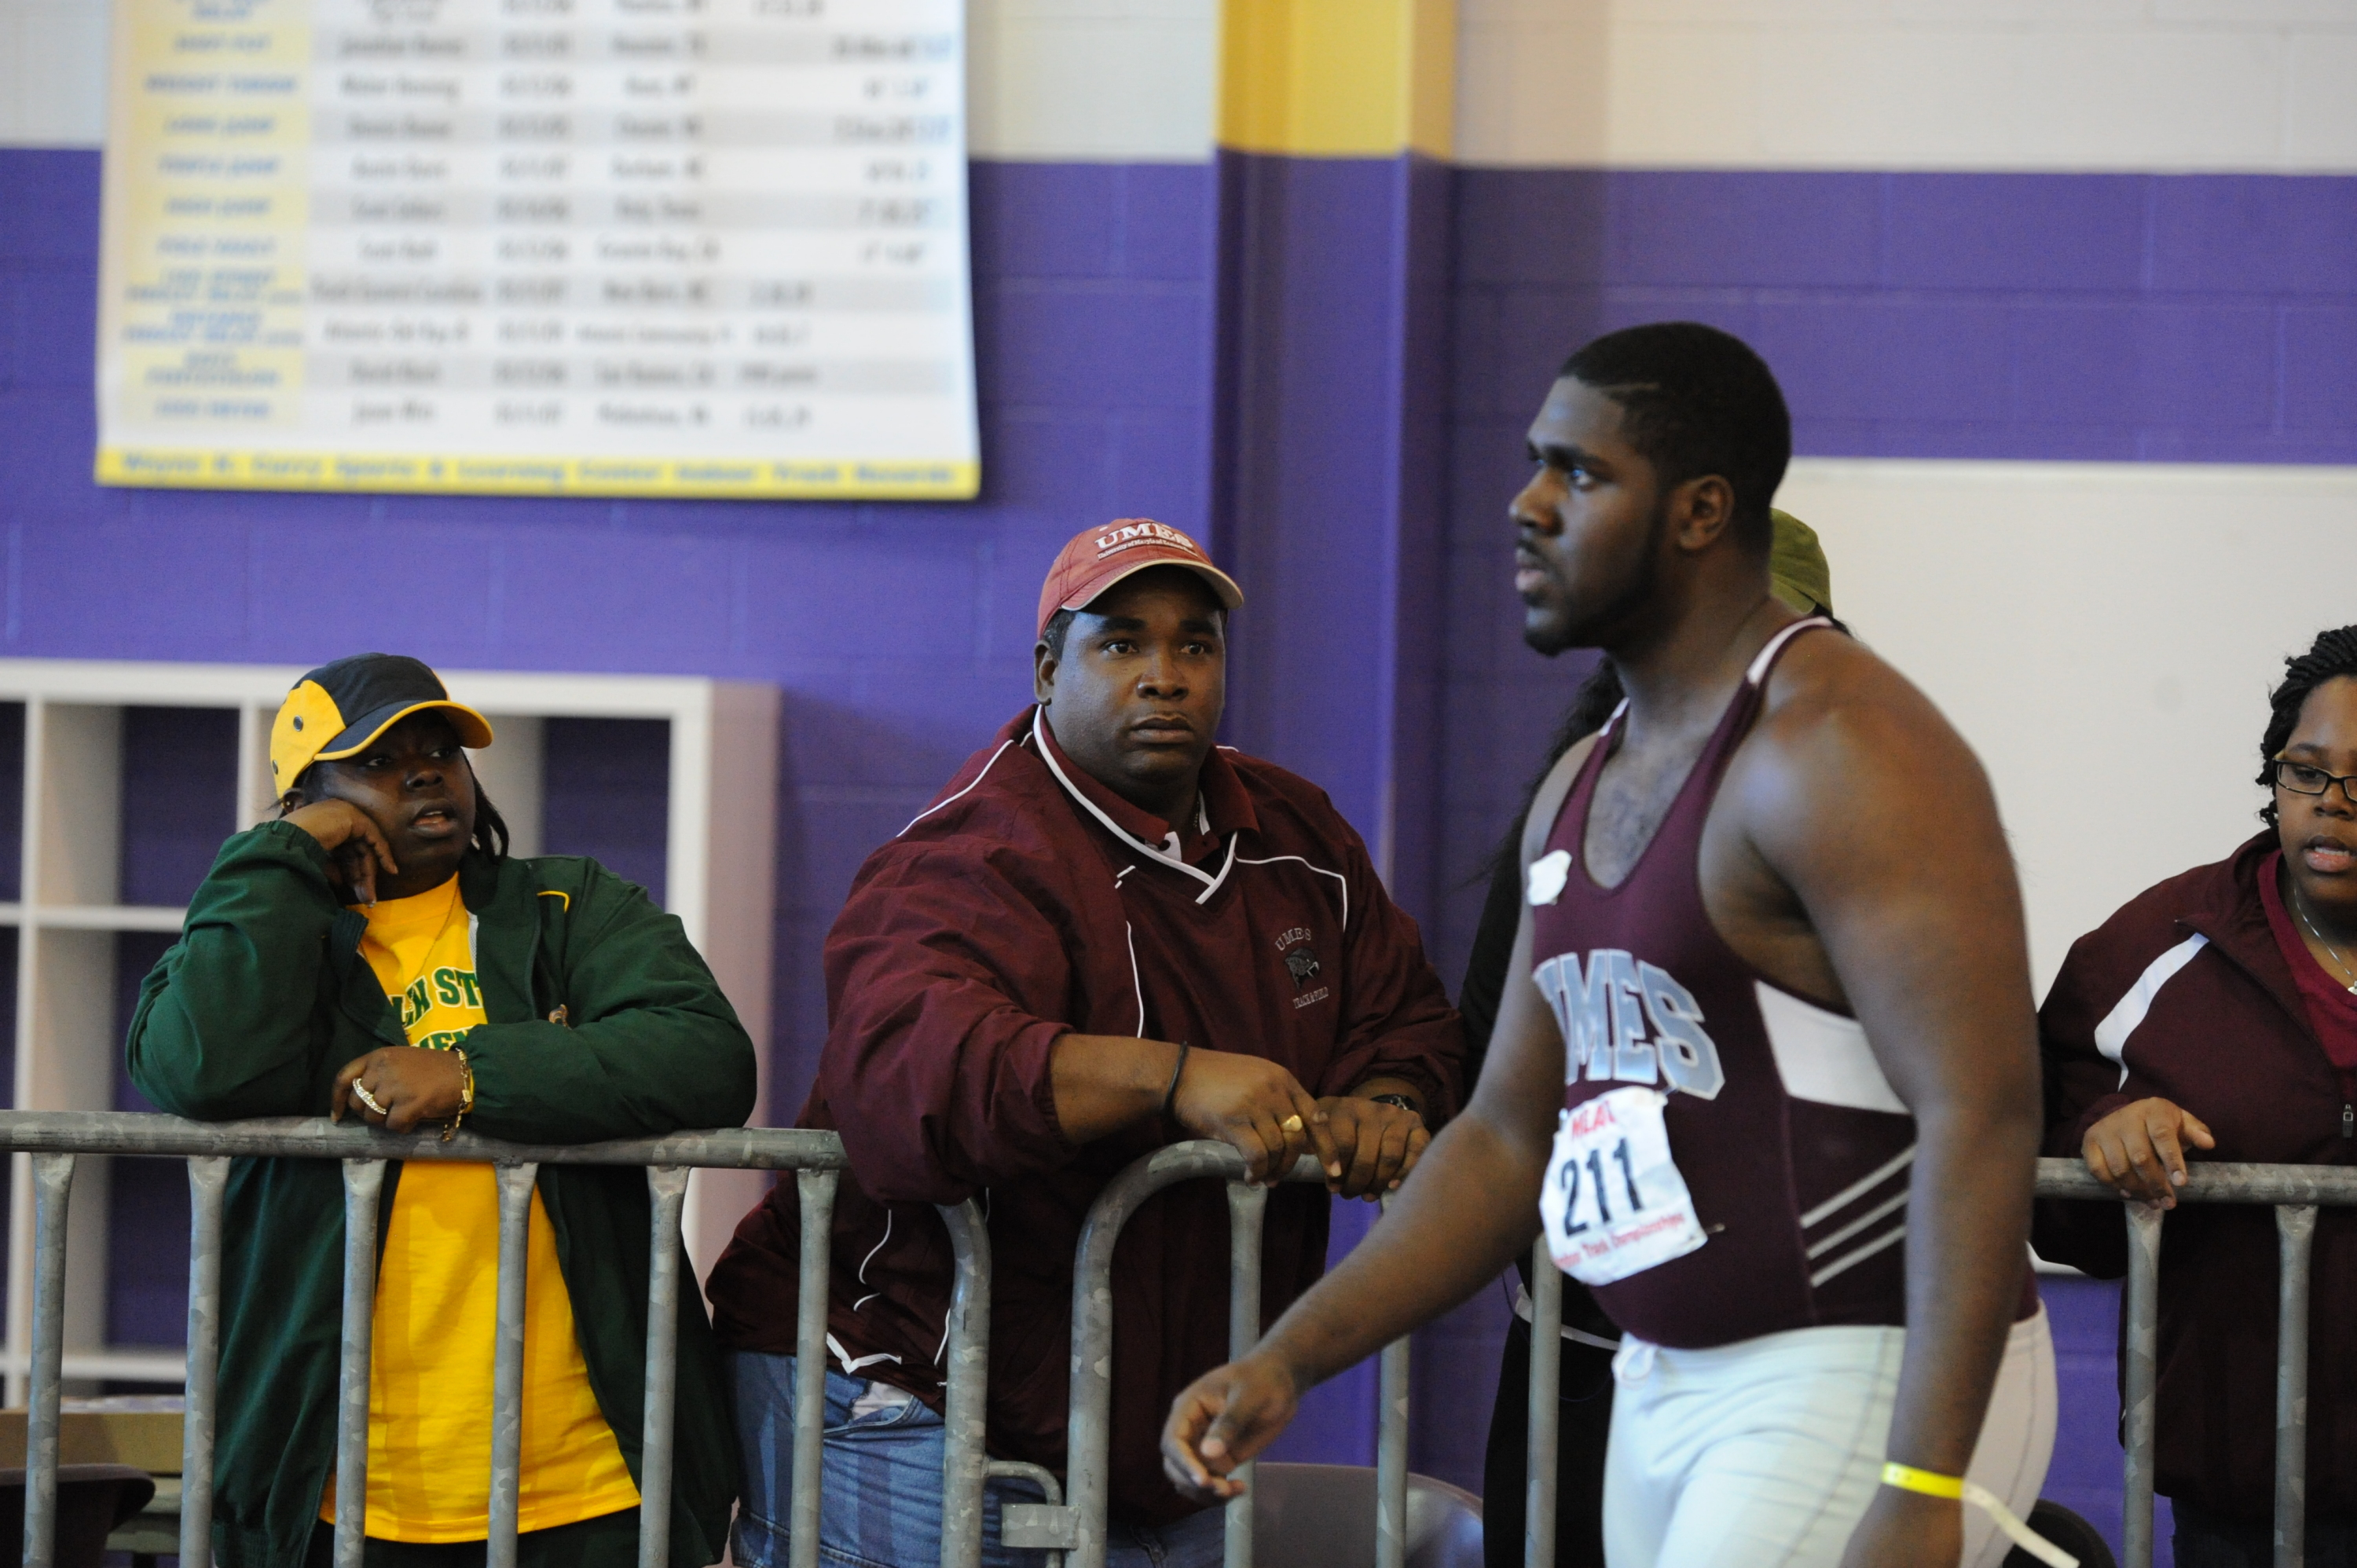 Coach Curtley Bynoe's throwers did not disappoint in their debuts